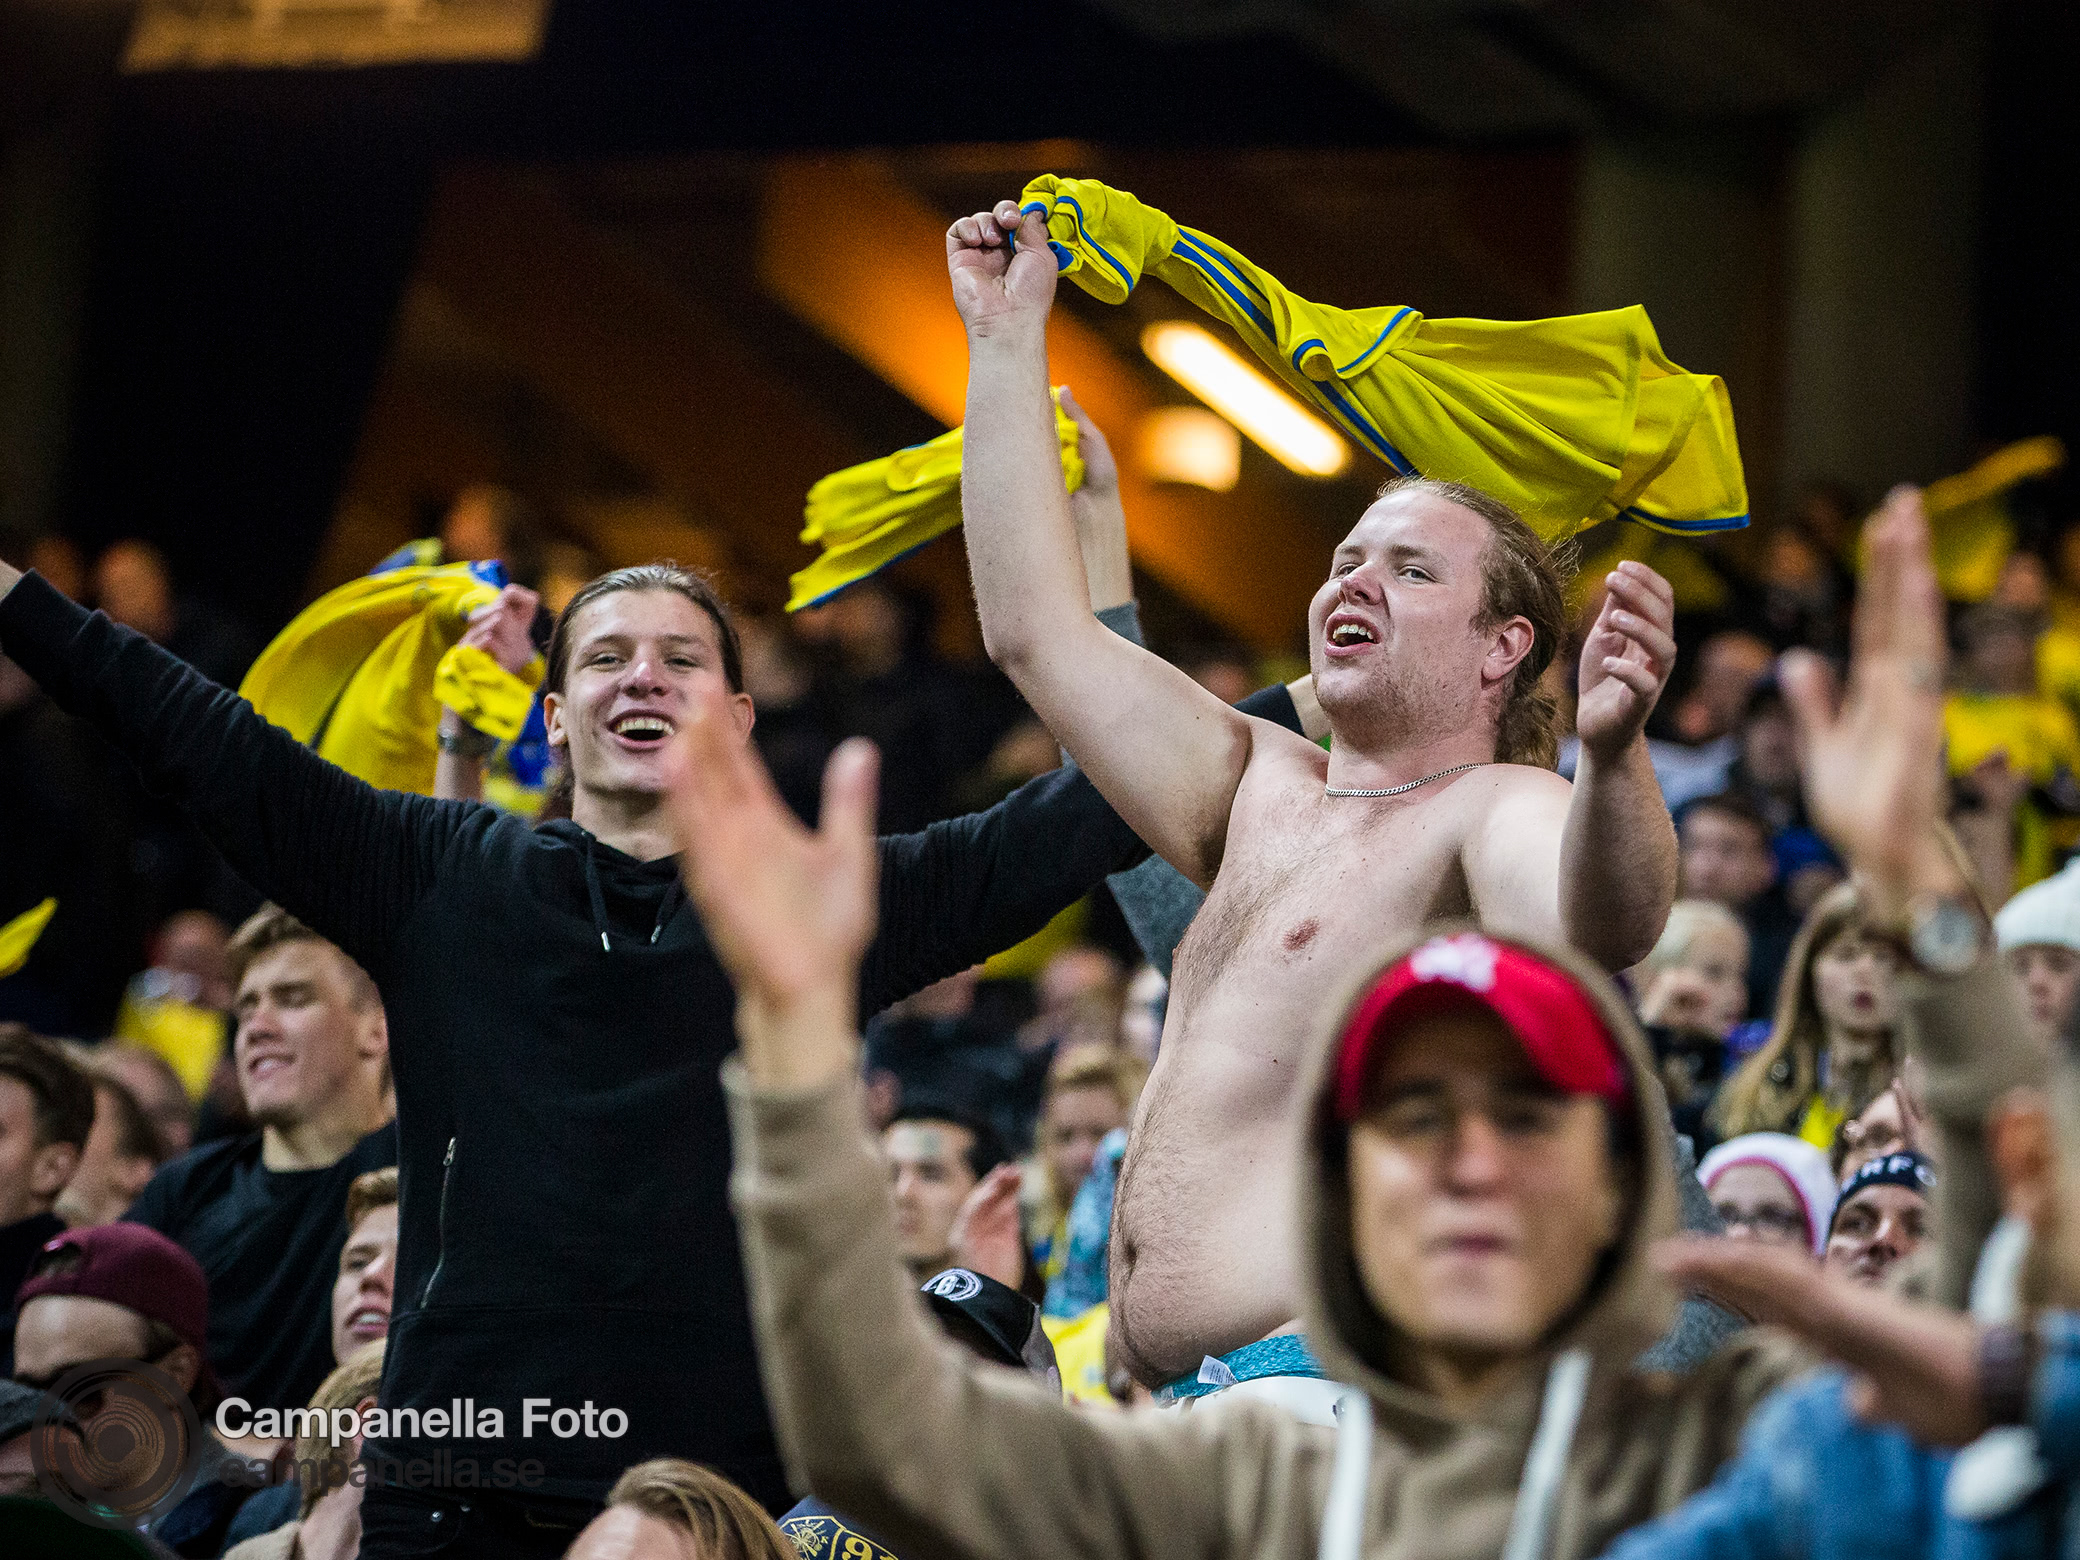 Sweden humiliated Luxembourg 8-0 - Michael Campanella Photography